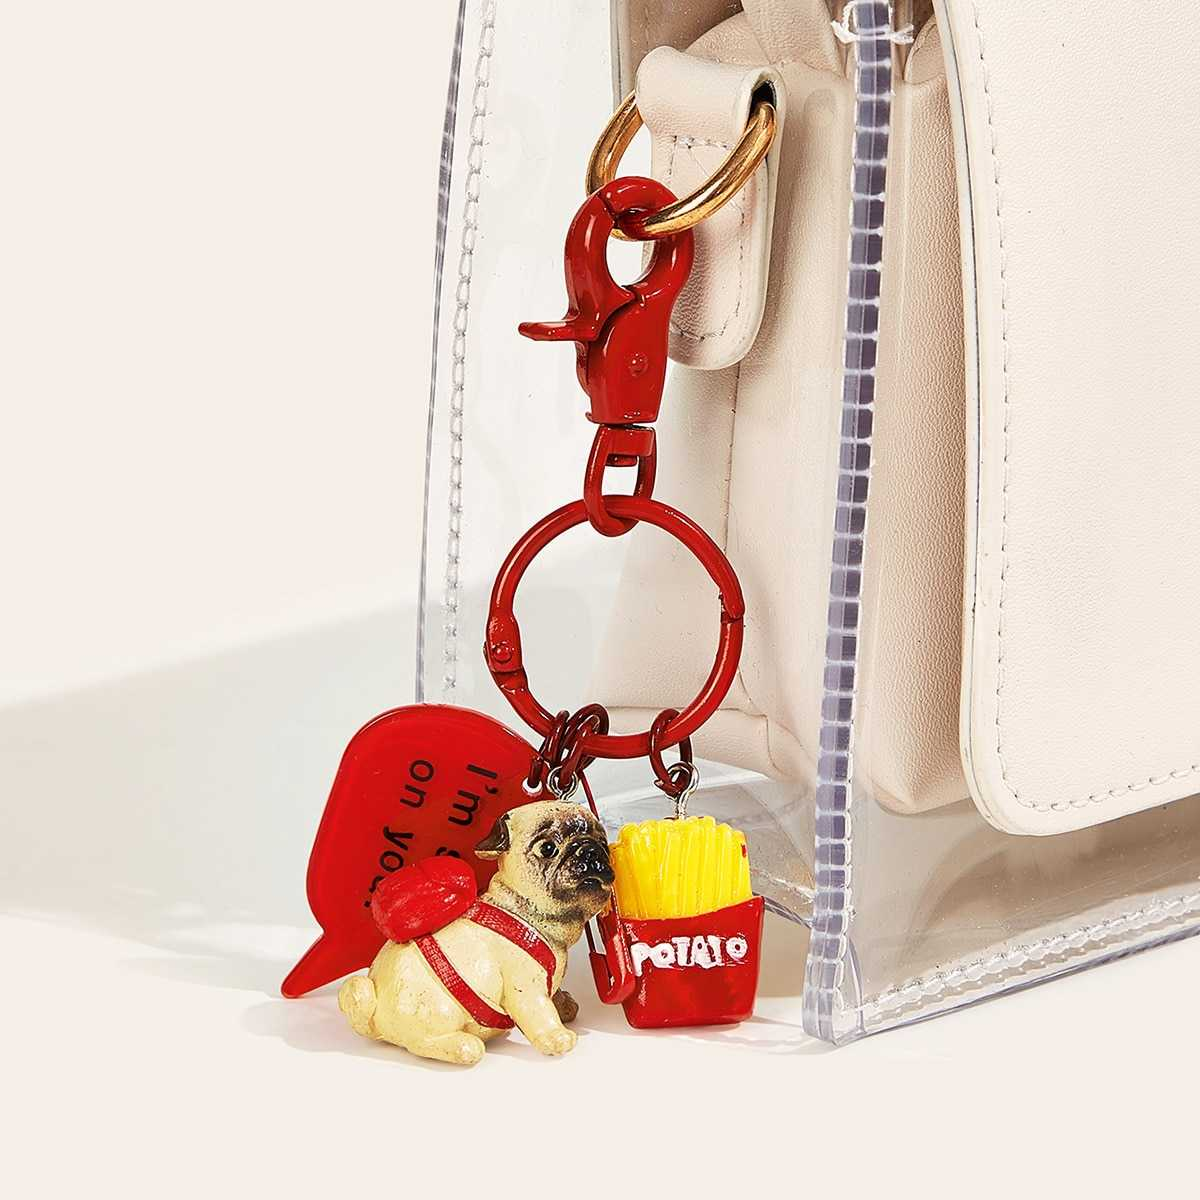 Cute Dog & French Fries Decor Bag Accessory in Red by ROMWE on GOOFASH